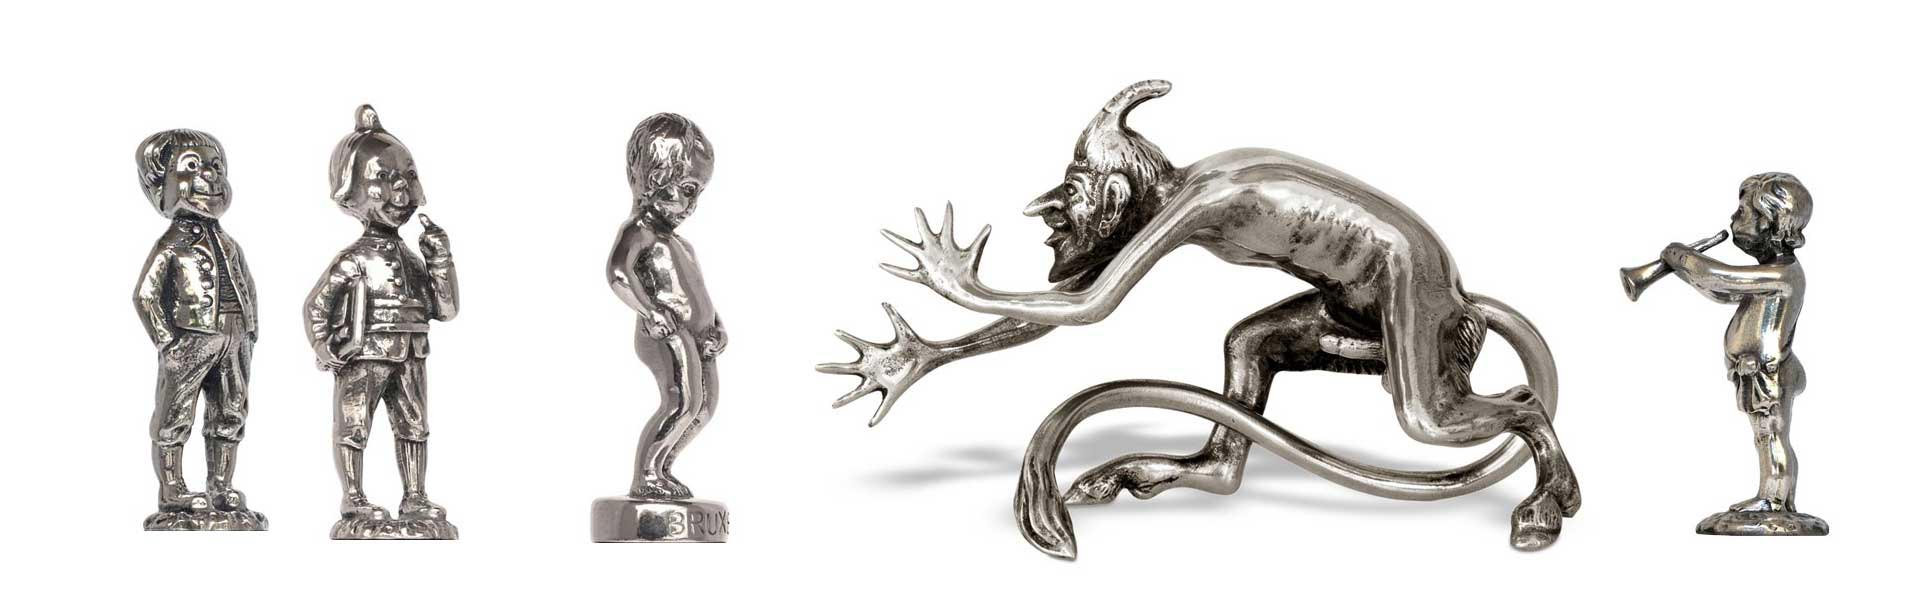 Statuettes, Figurines, Miniatures made in Italy